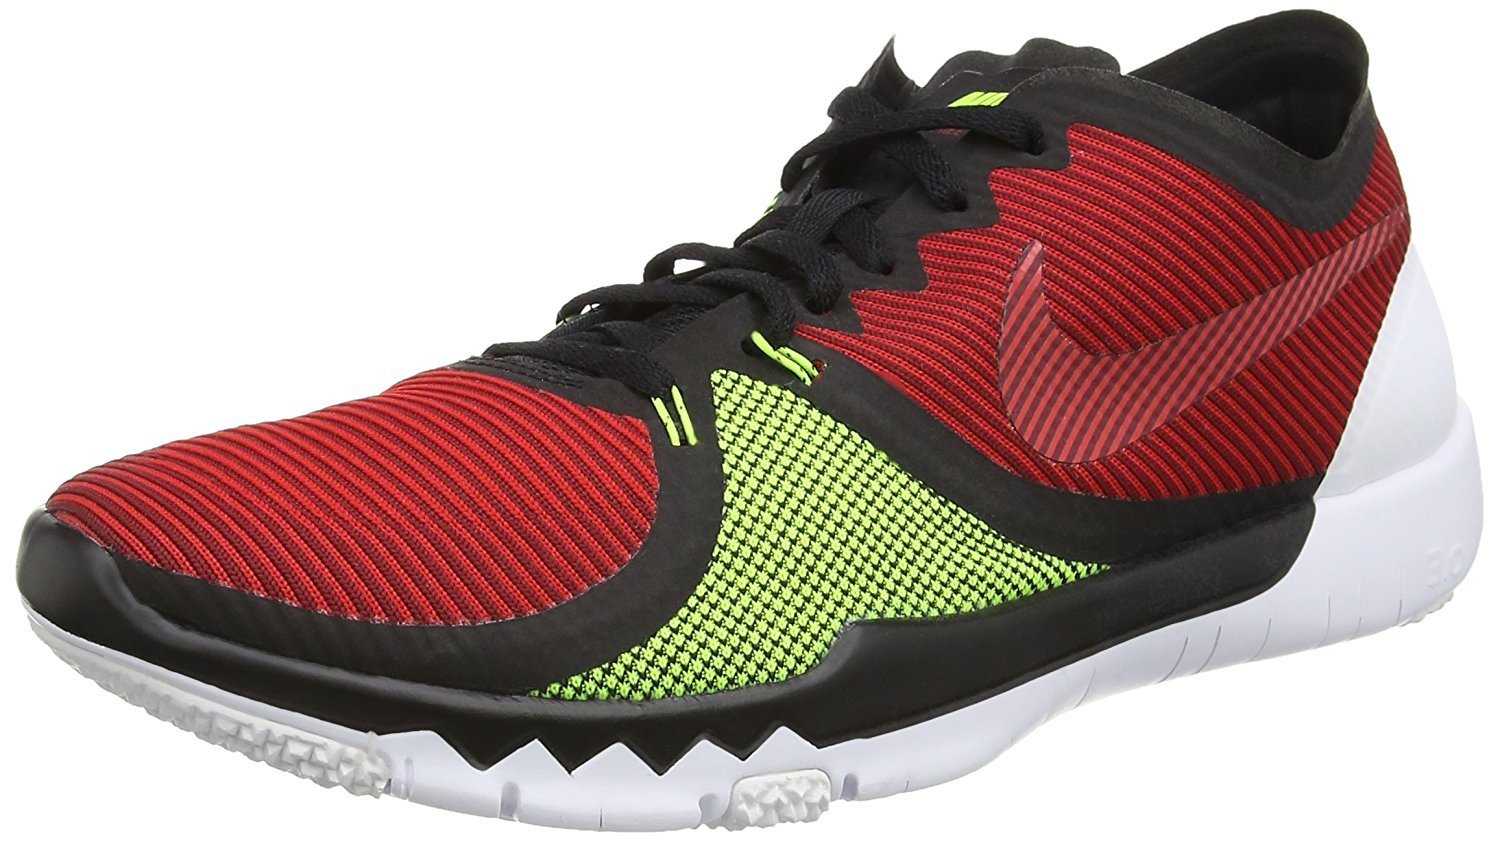 Nike Free Trainer 3.0 V4   Buy Nike Shoes   Sneakers ... 051a4be29